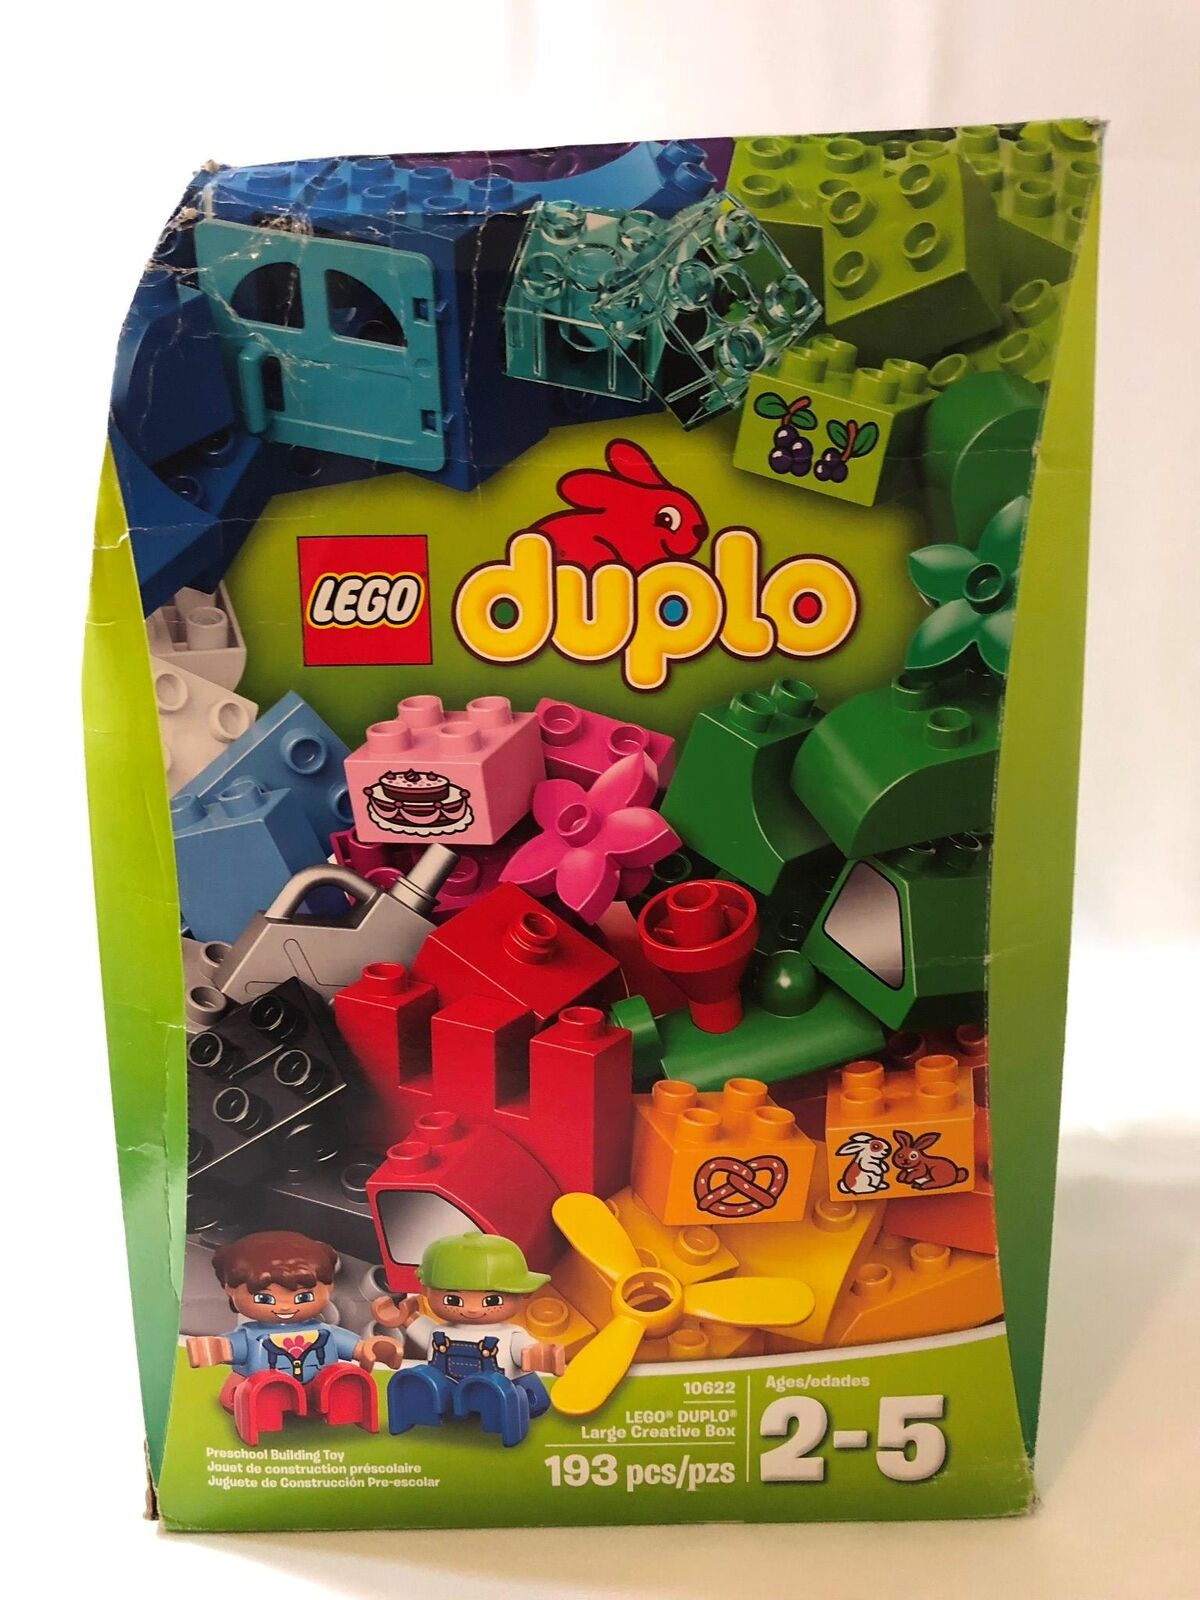 Lego Duplo 10622 Large Creative Box 193 Pieces NEW